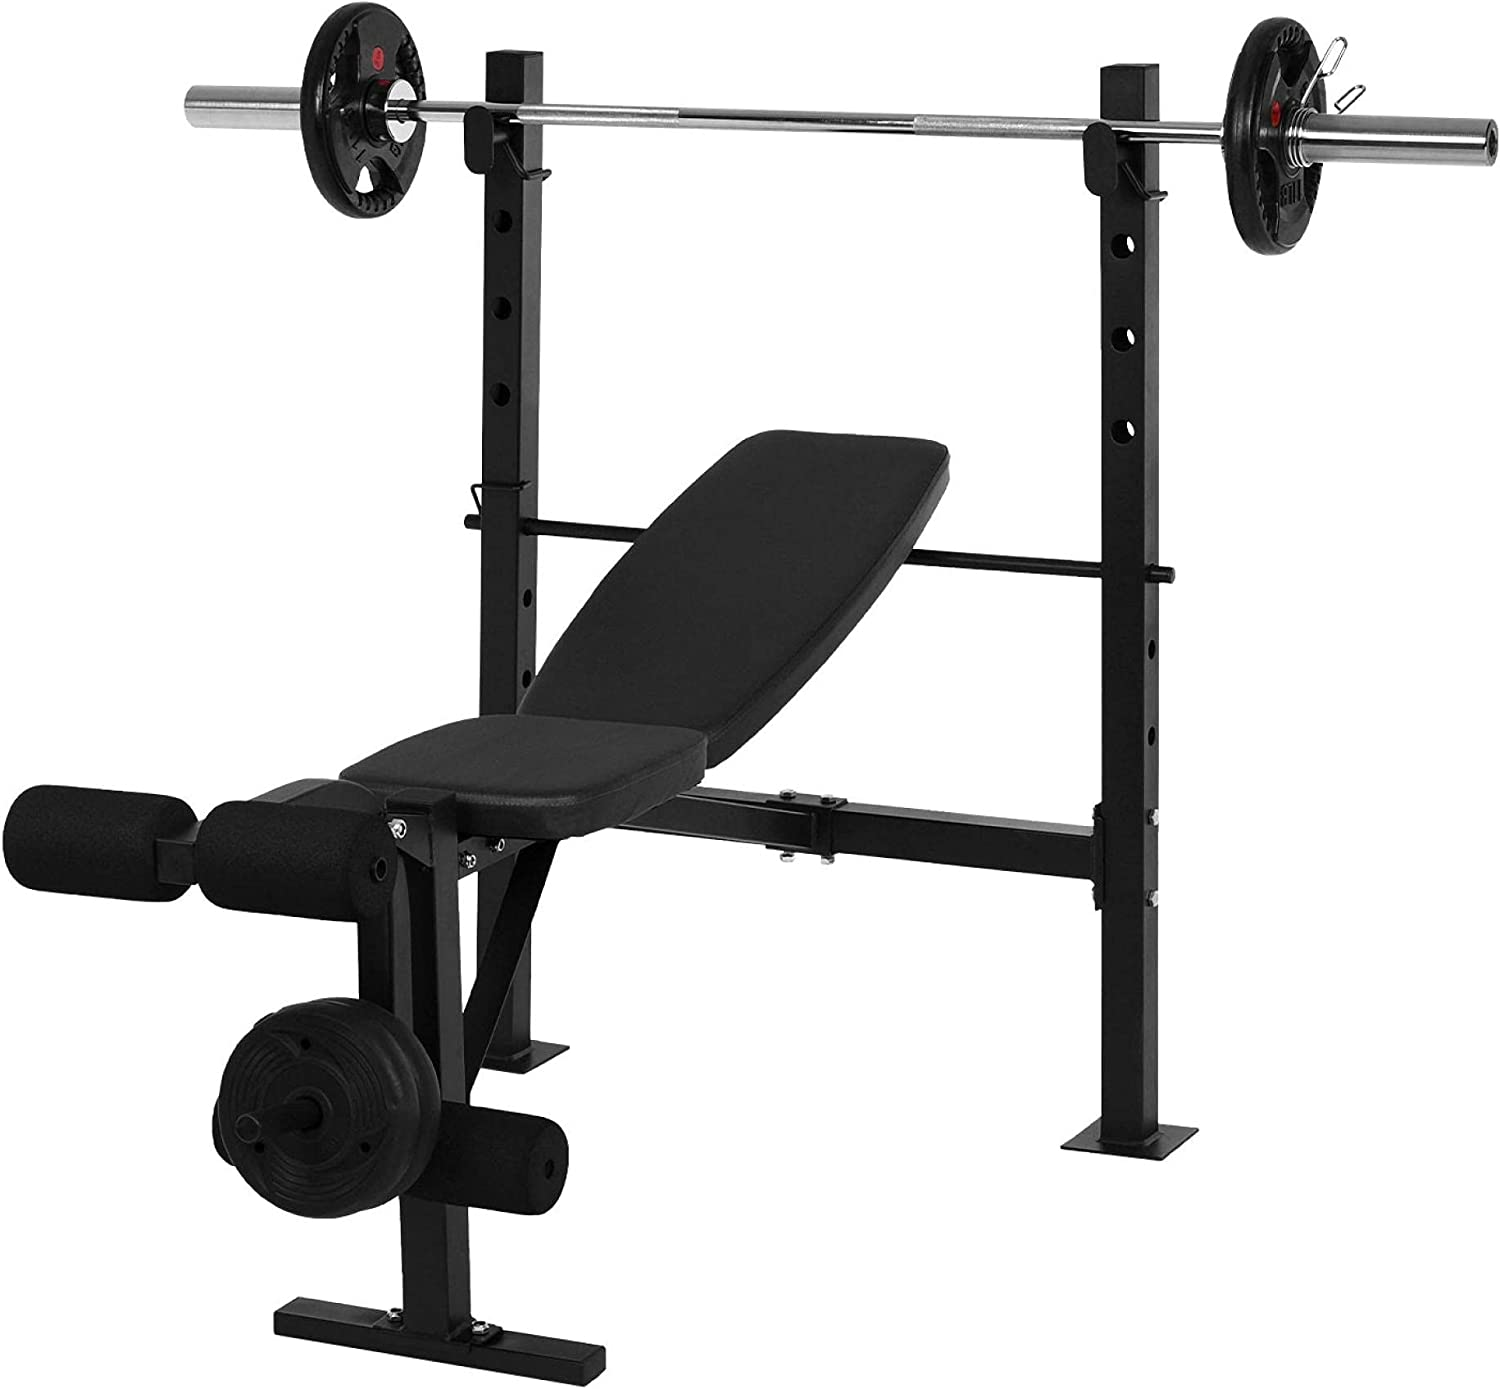 Weight Bench Adjustable Press Max 87% OFF Credence Rack S Lifting